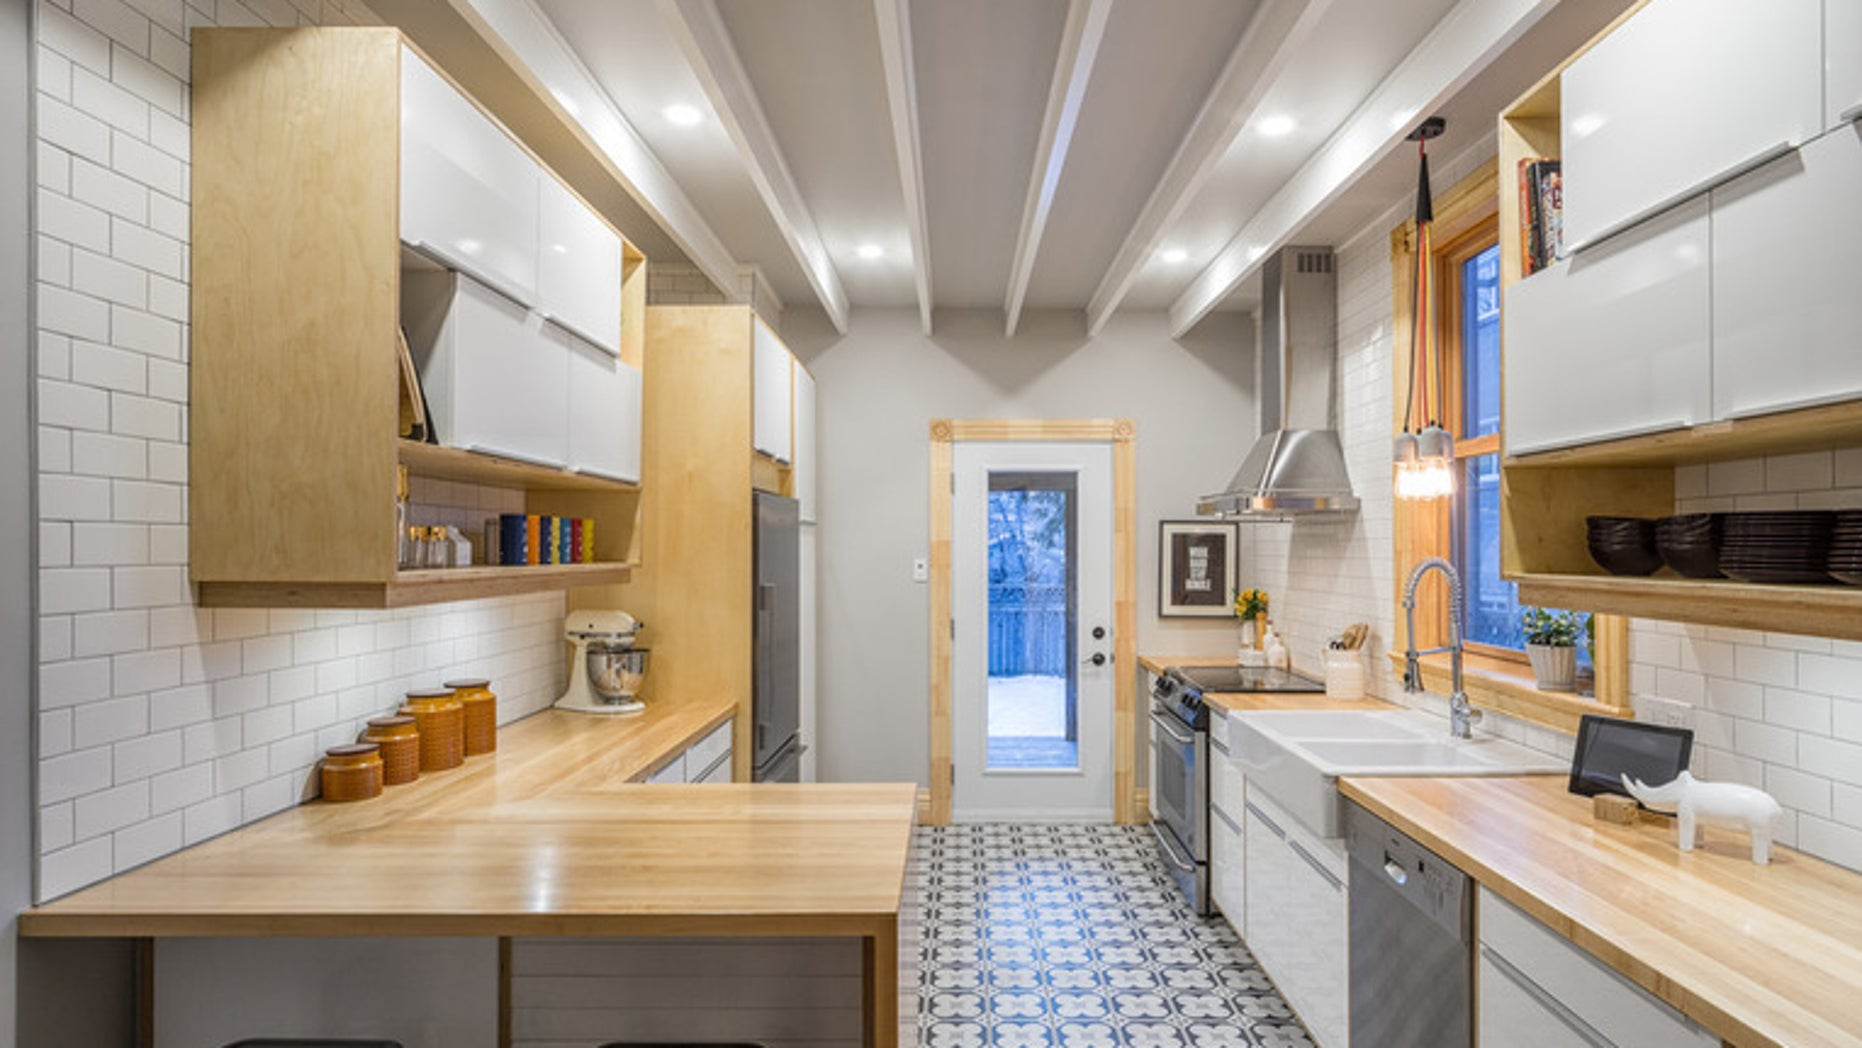 We Recently Profiled Options For Skinny Islands In Small Kitchens. For  Those Who Canu0027t Swing A Micro Island, Either Due To The Size Or The Layout  Of Their ...